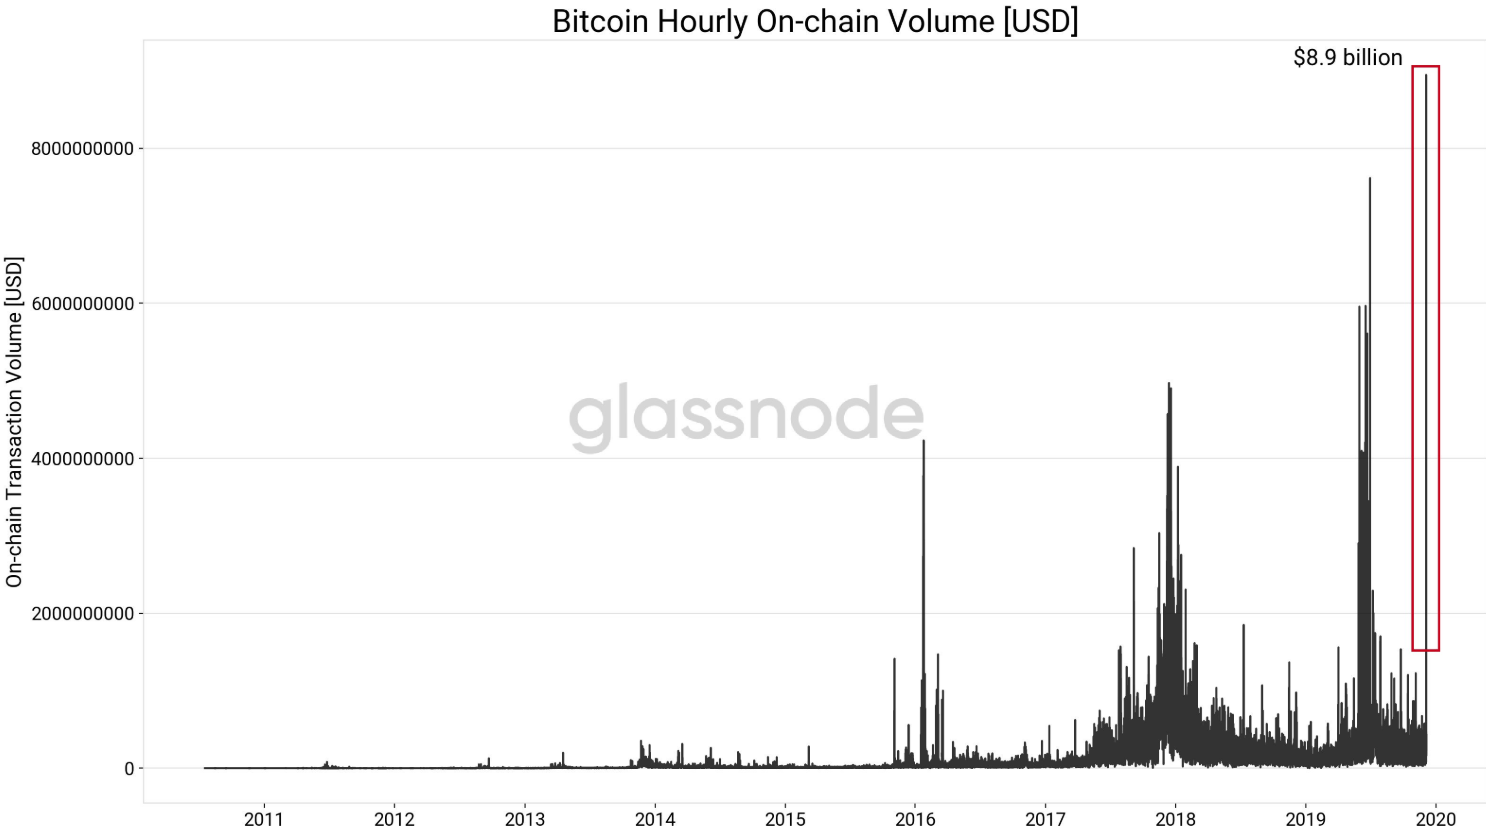 Bitcoin Hourly On-Chain Volume